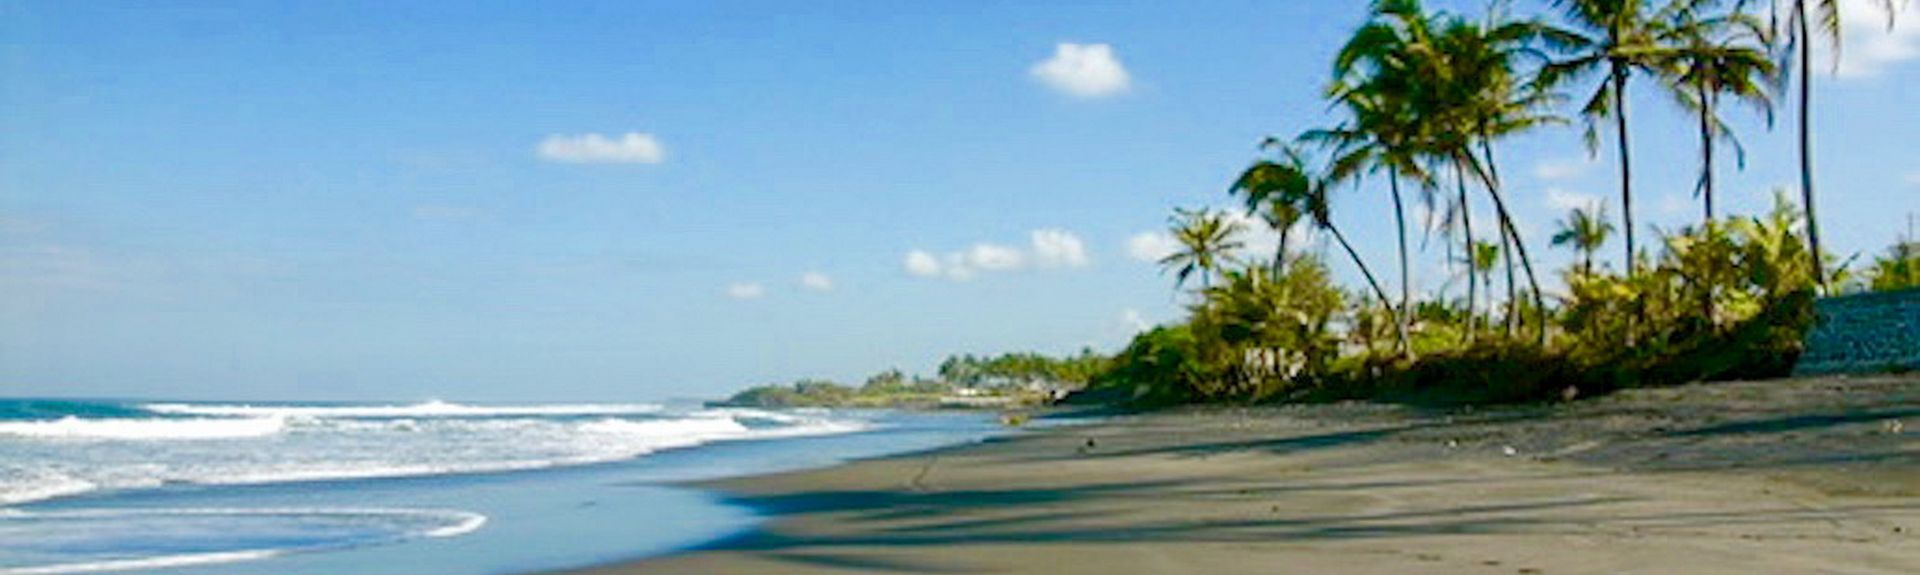 East Selemadeg, Tabanan Regency, Bali, Republic of Indonesia